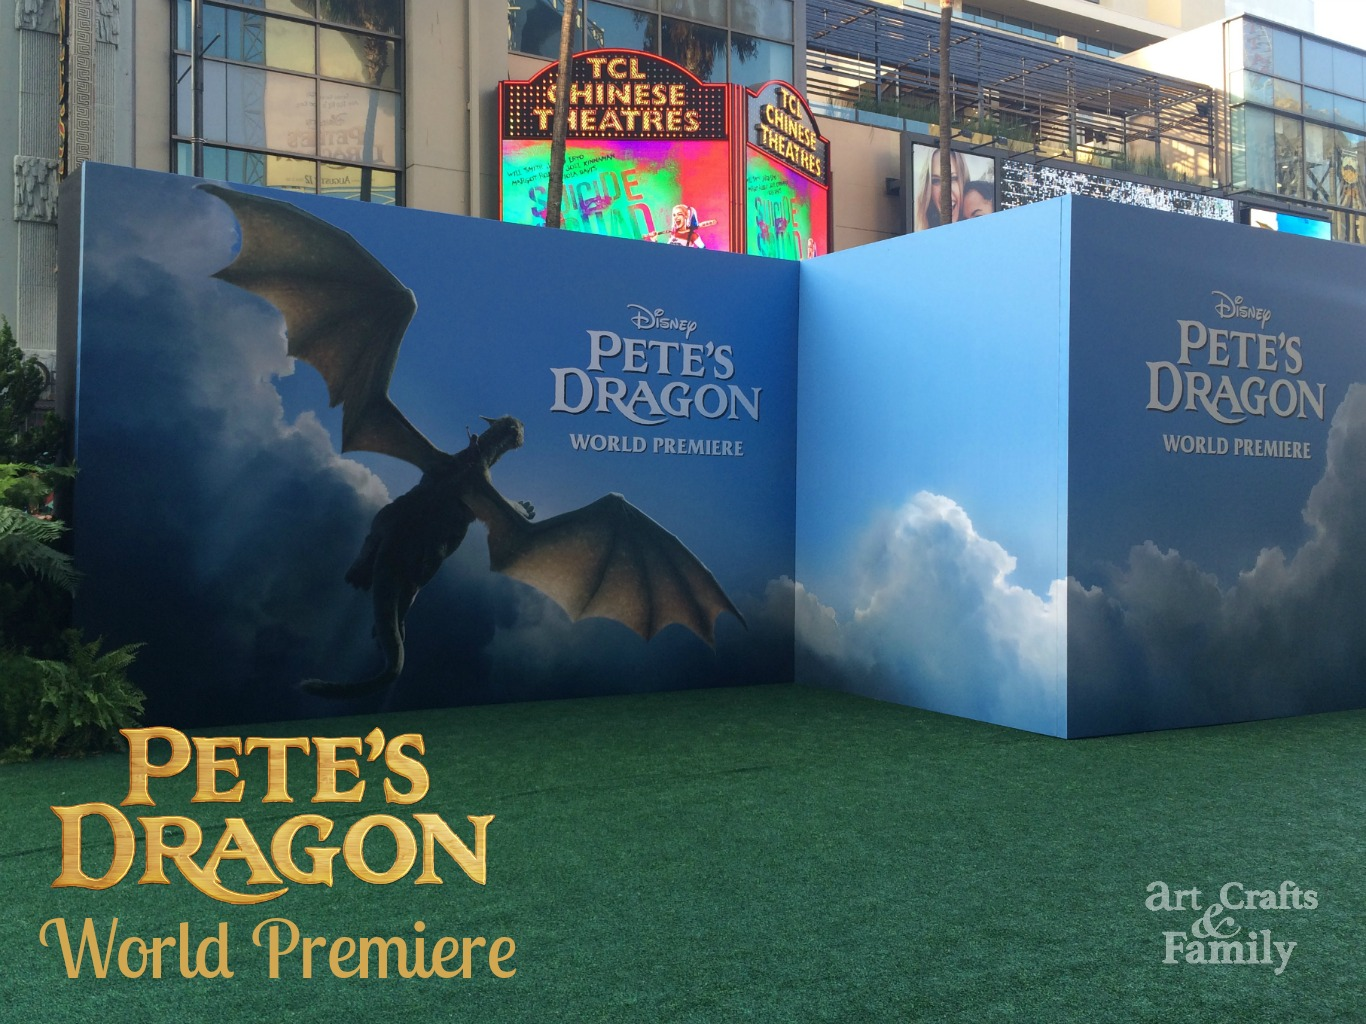 Pete's Dragon Red Carpet Premiere in Los Angeles!